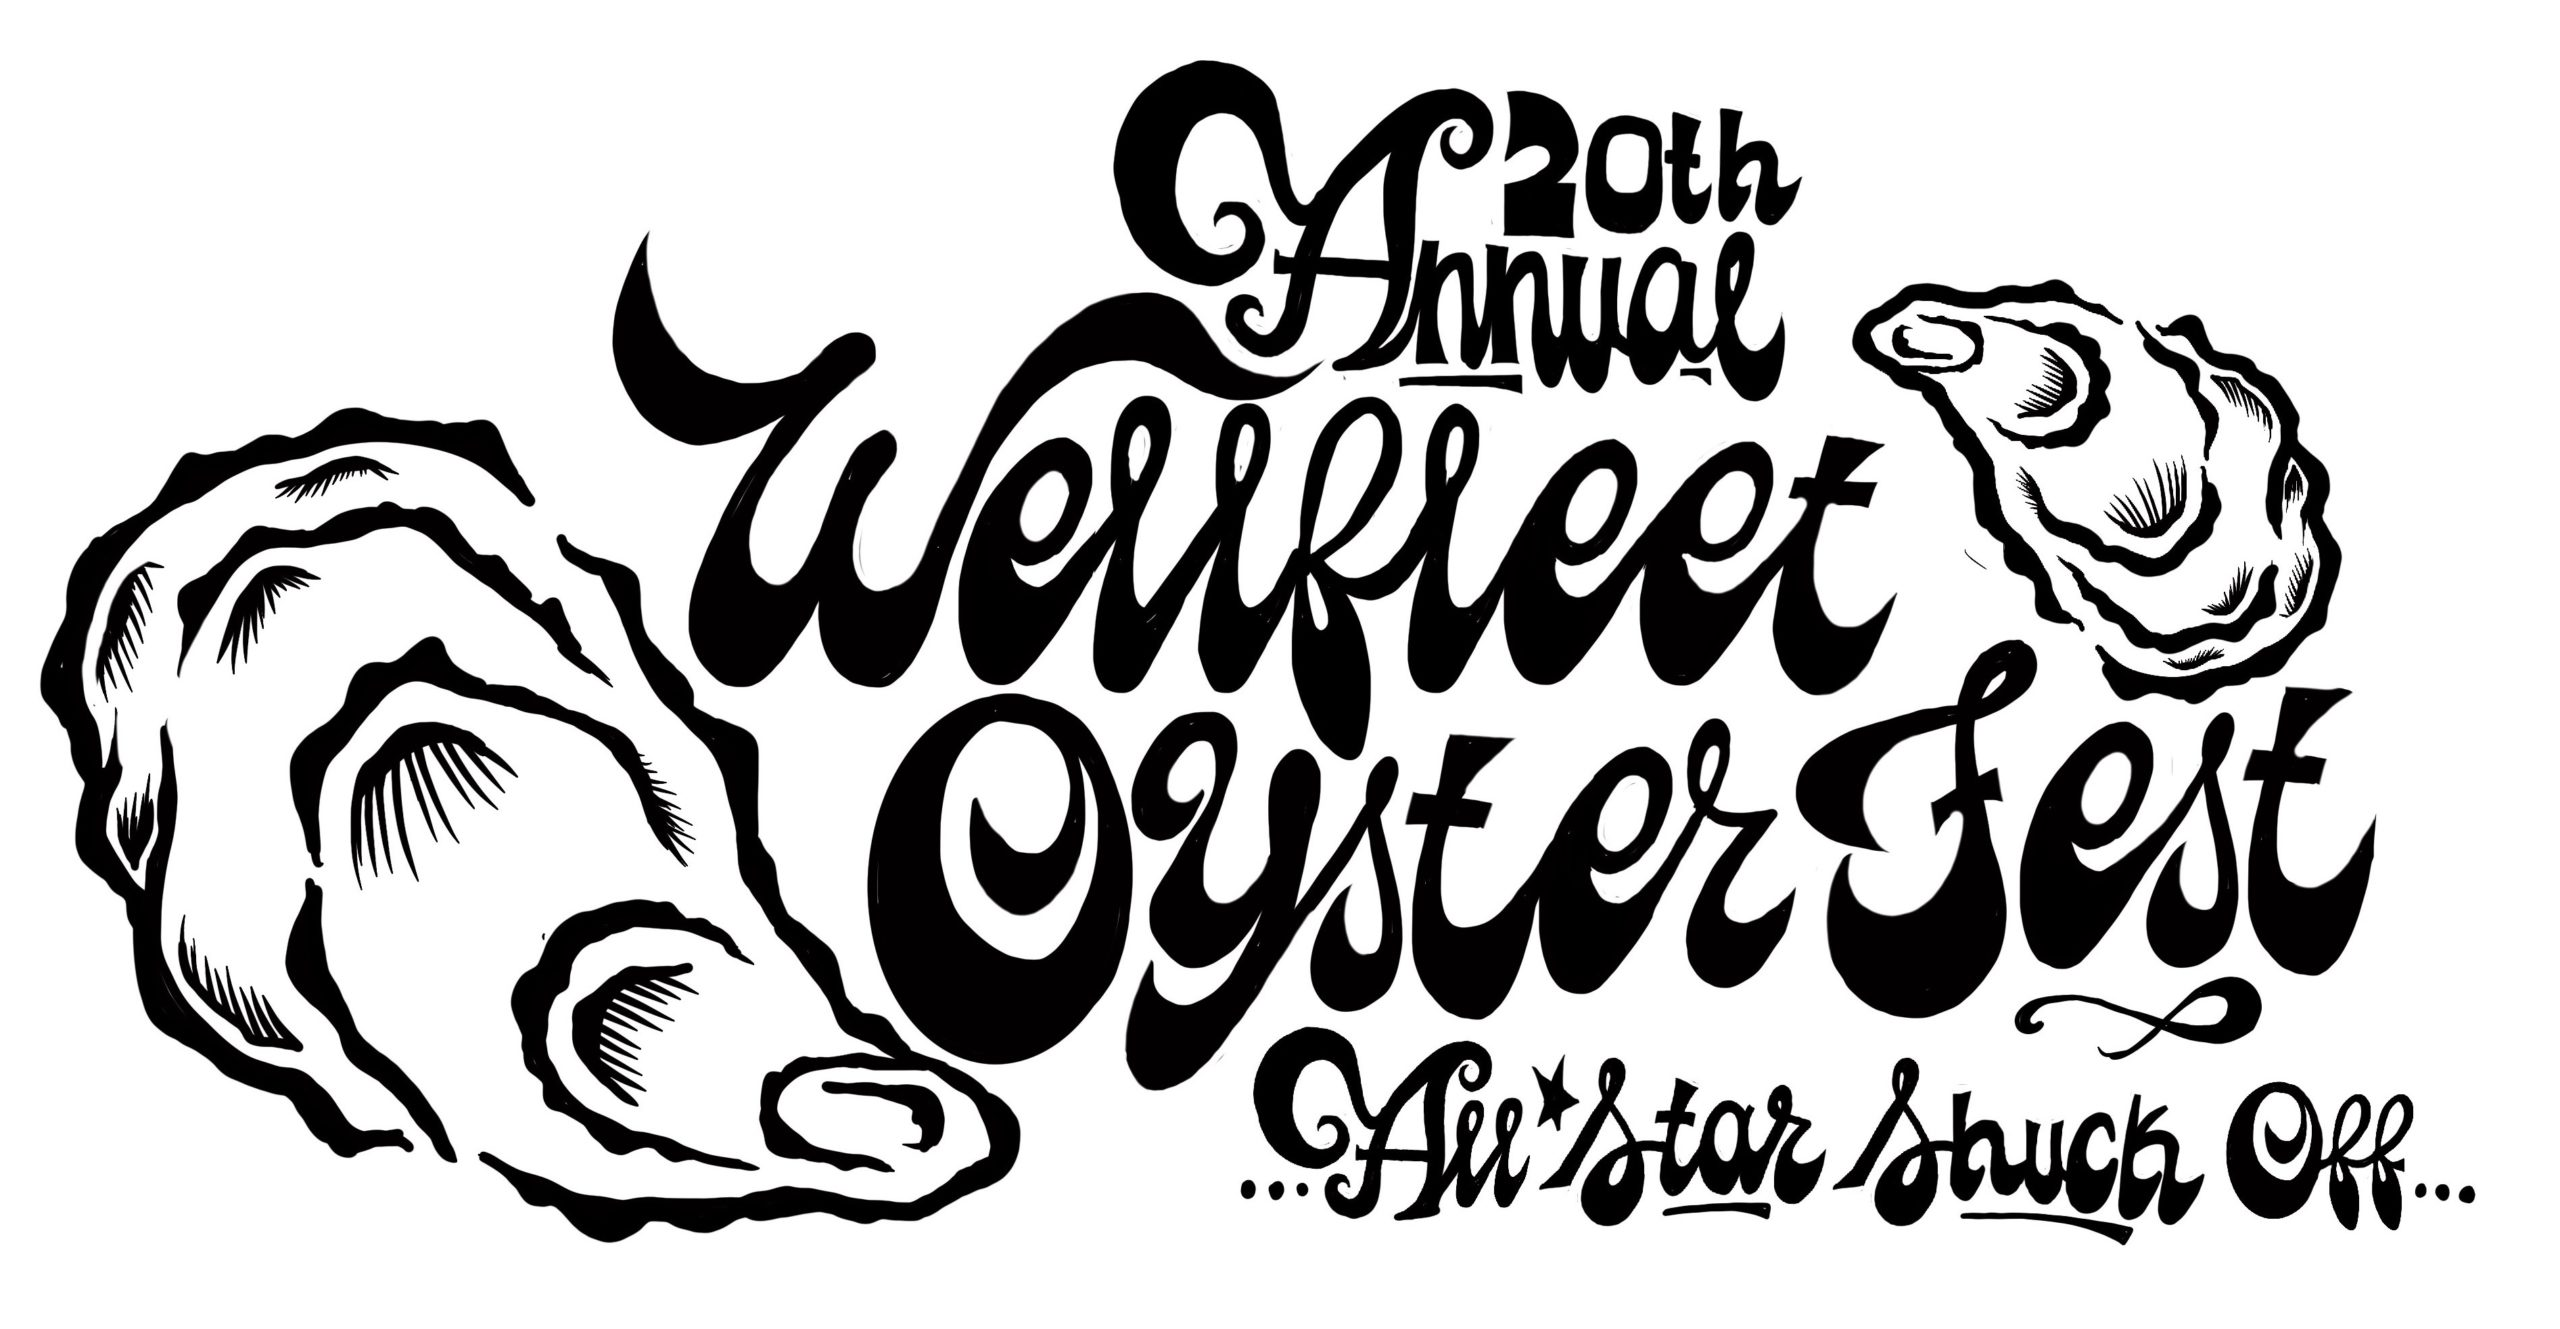 20th annual Wellfleet OysterFest All Star Shuck Off